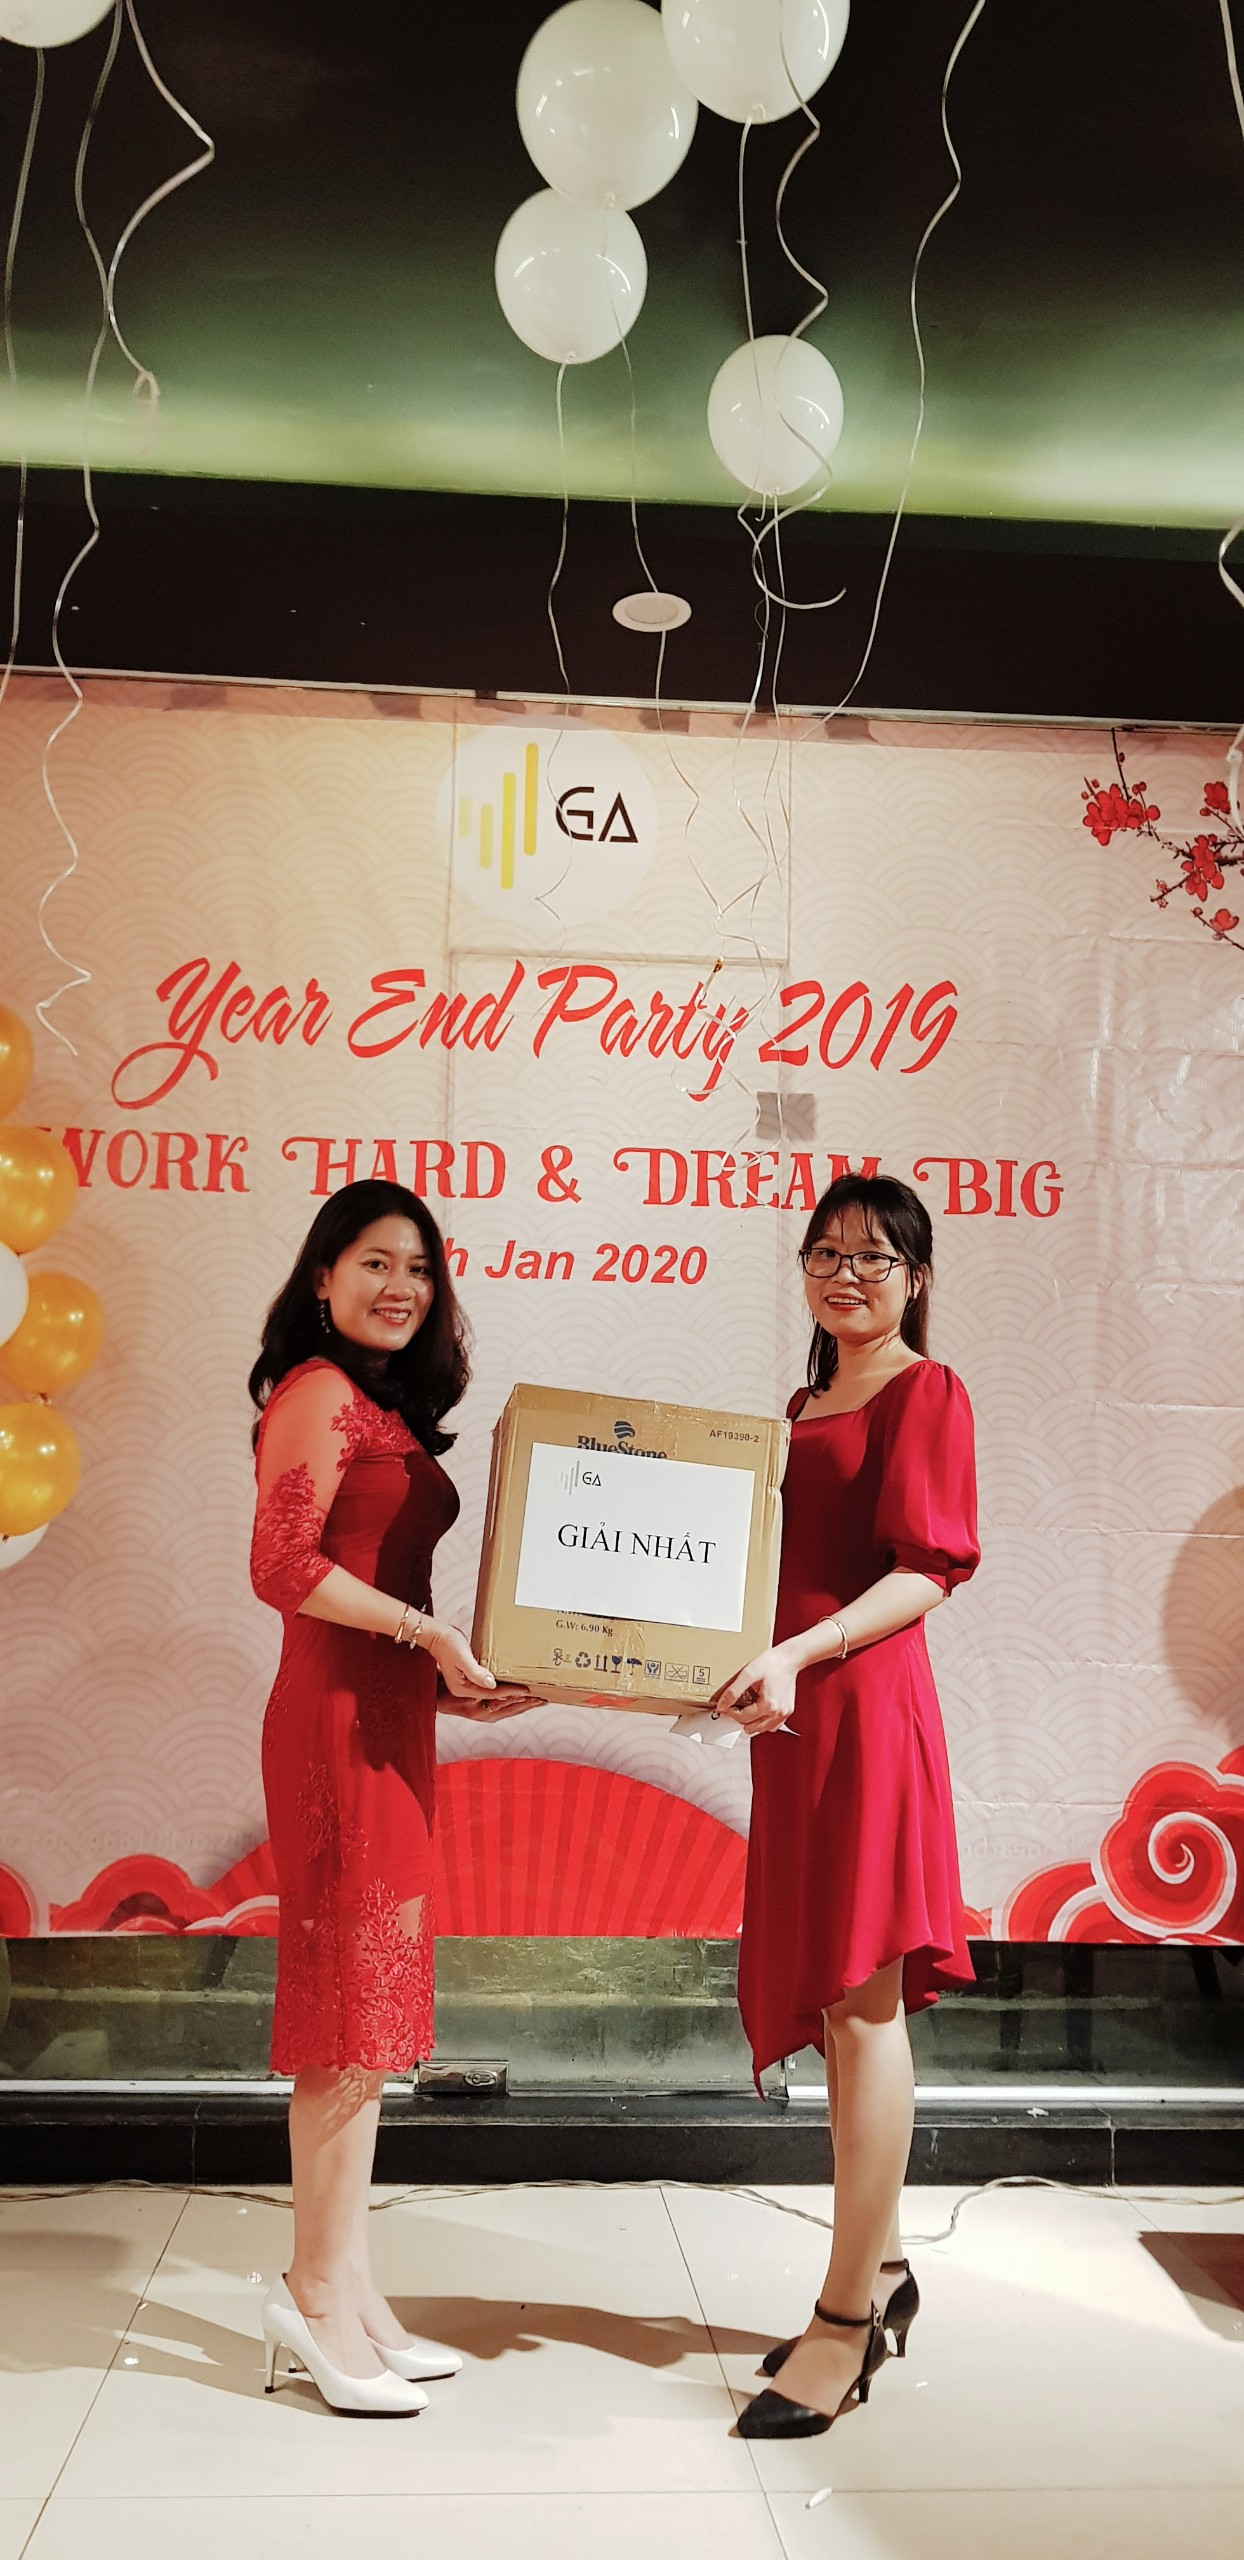 Year End Party 2019 lucky draw giai nhat